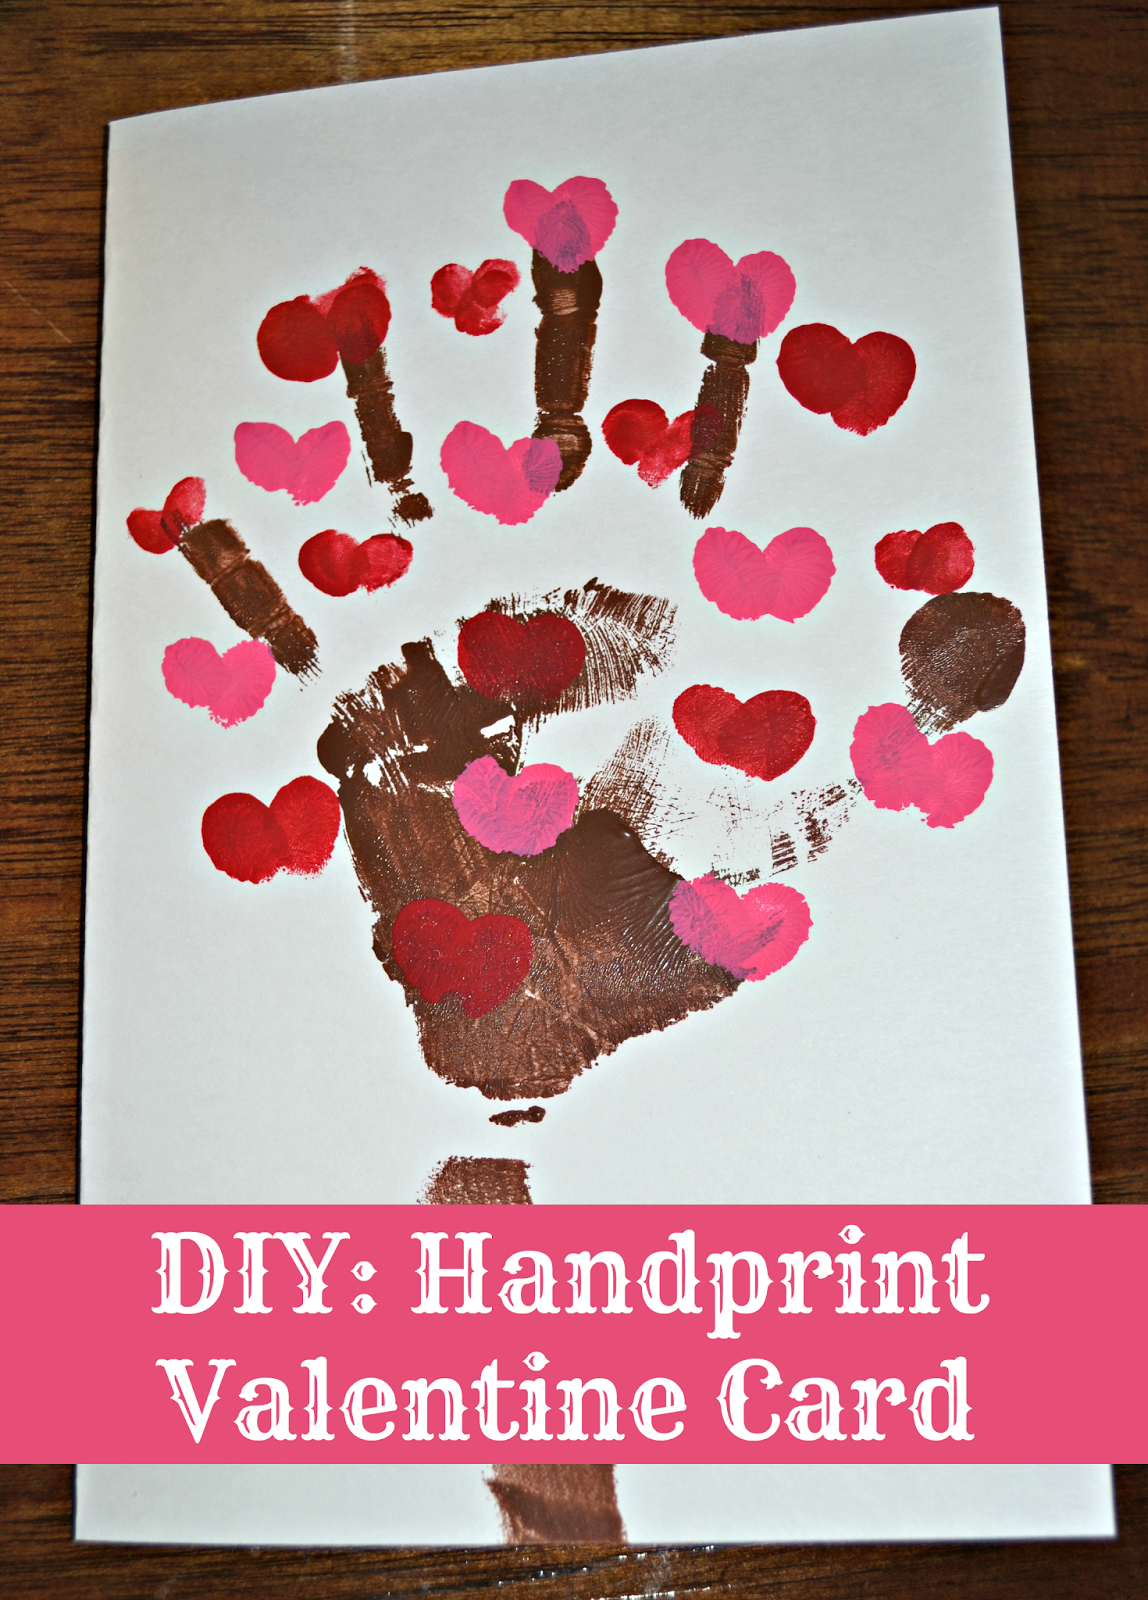 A quick and easy last minute Valentine Card idea DIY Handprint